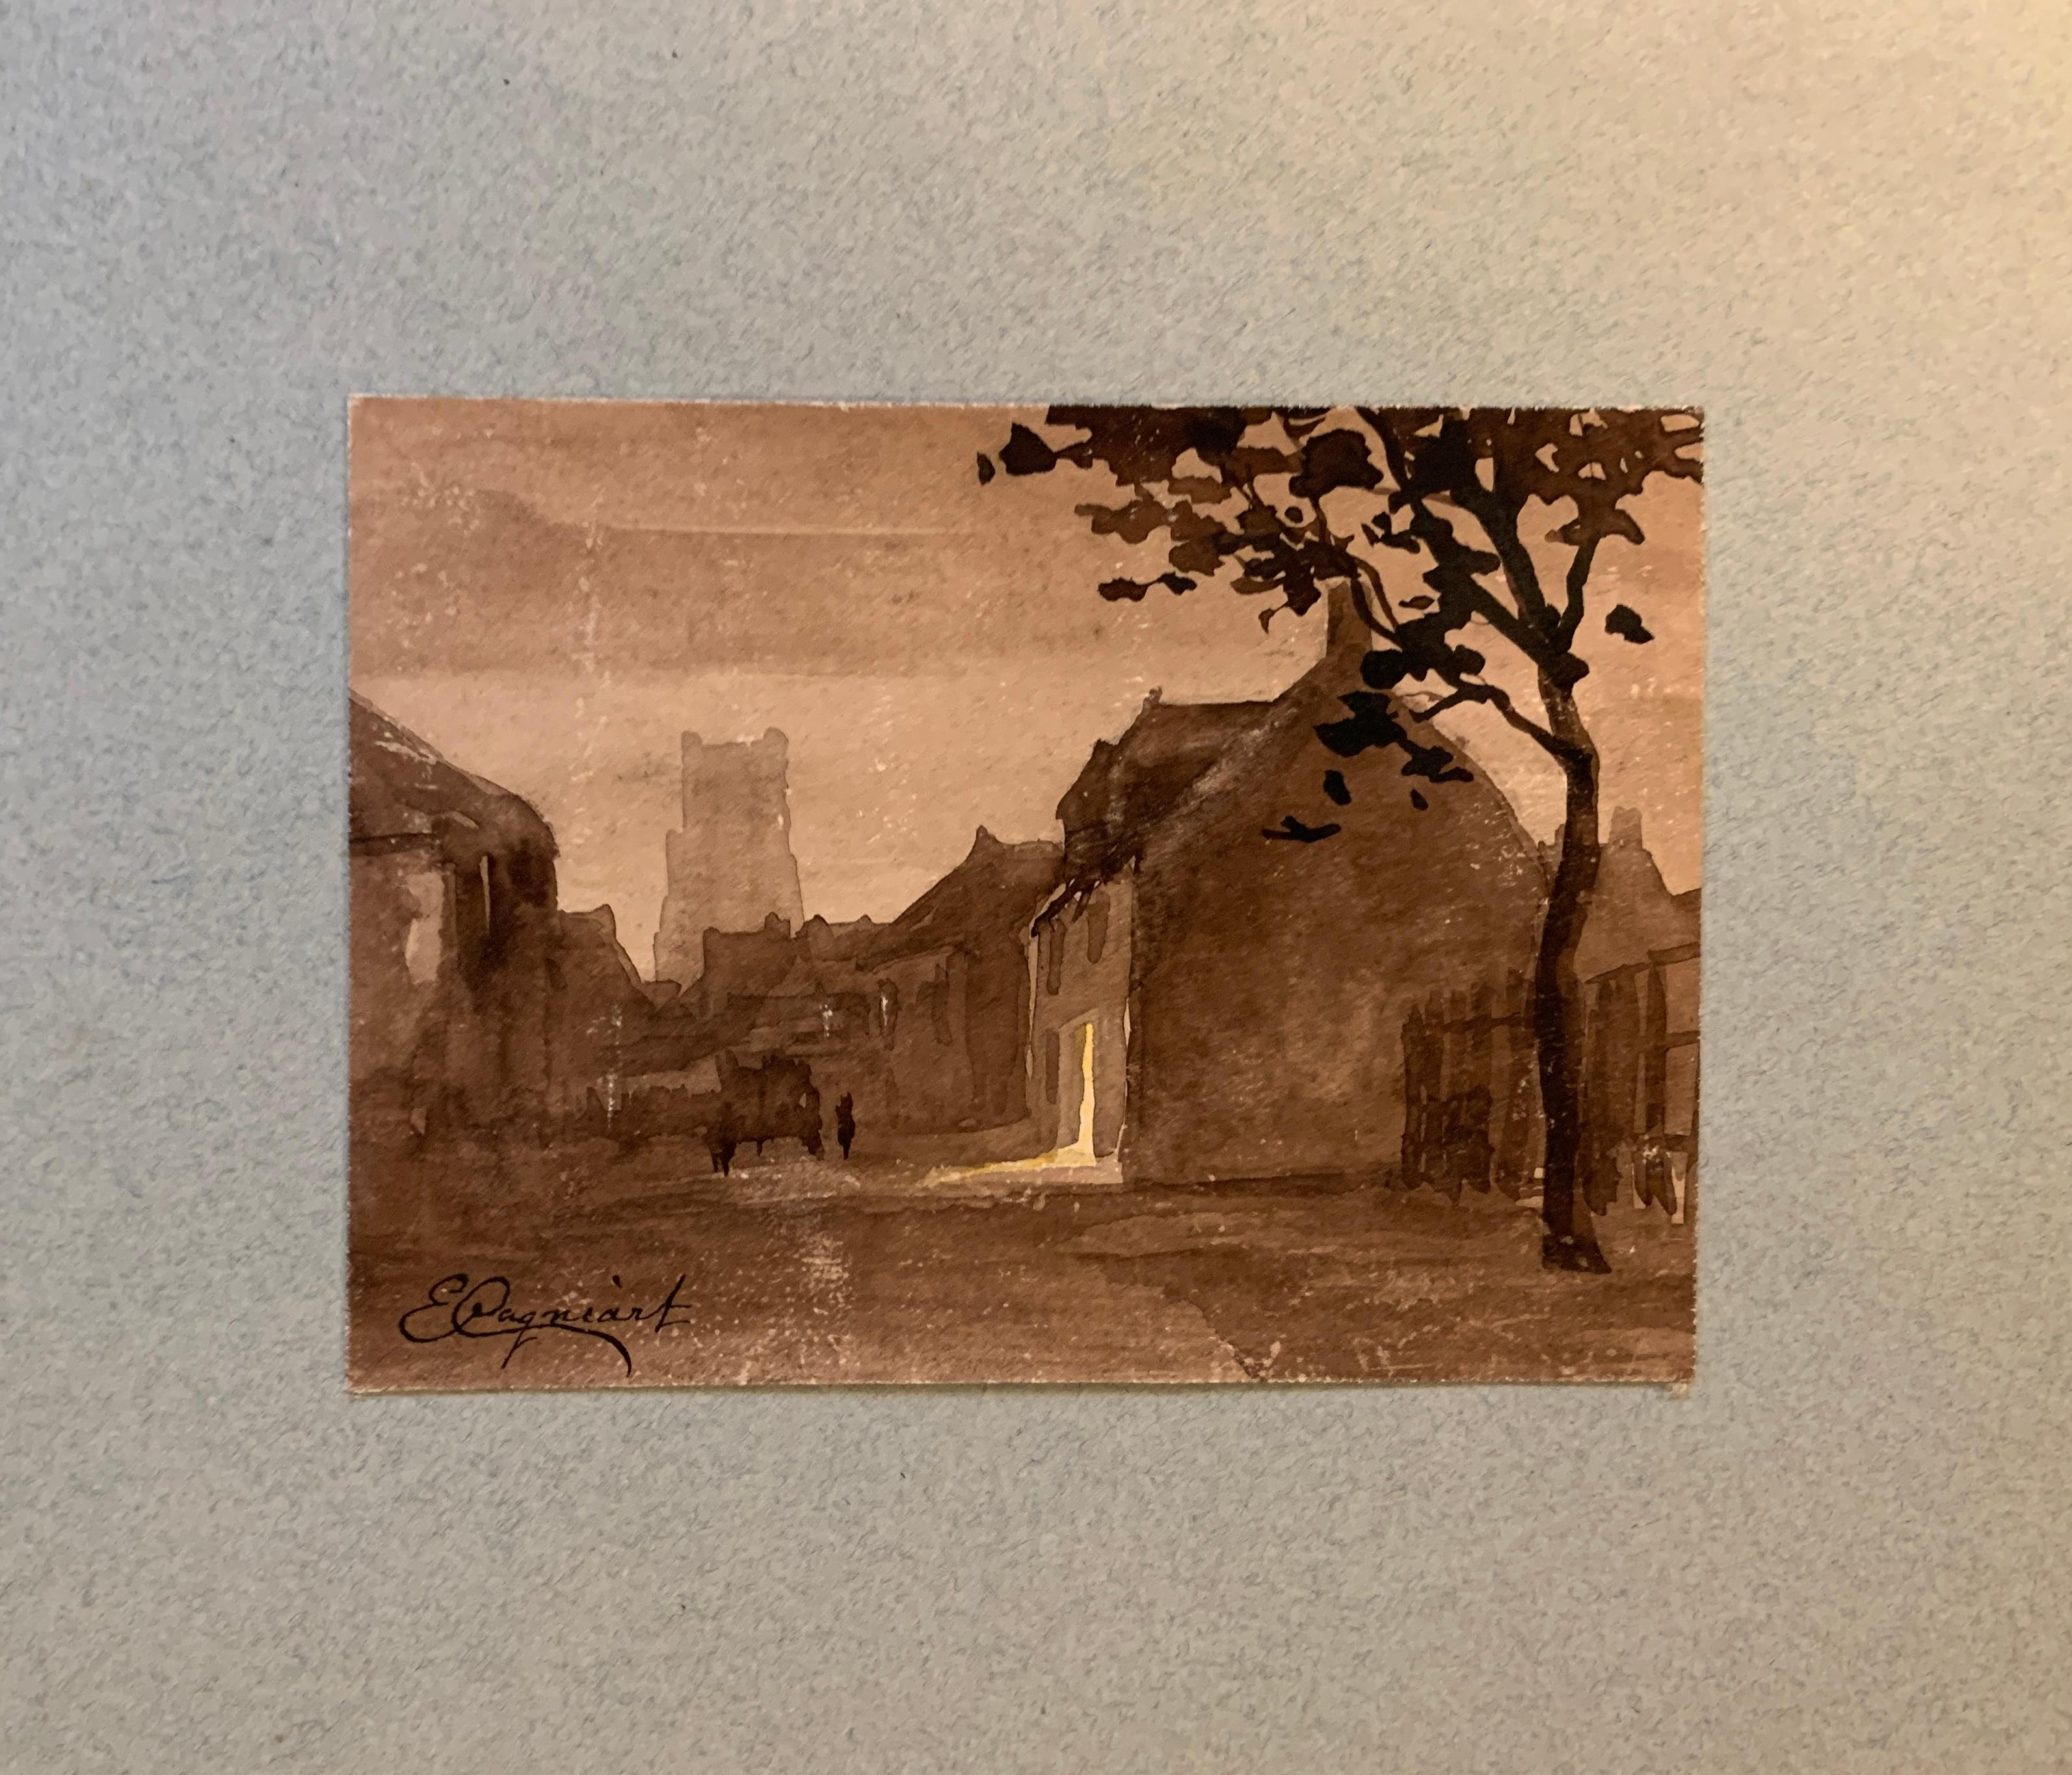 French 19th century Pen and Ink landscape, town and  church from a sketch folder